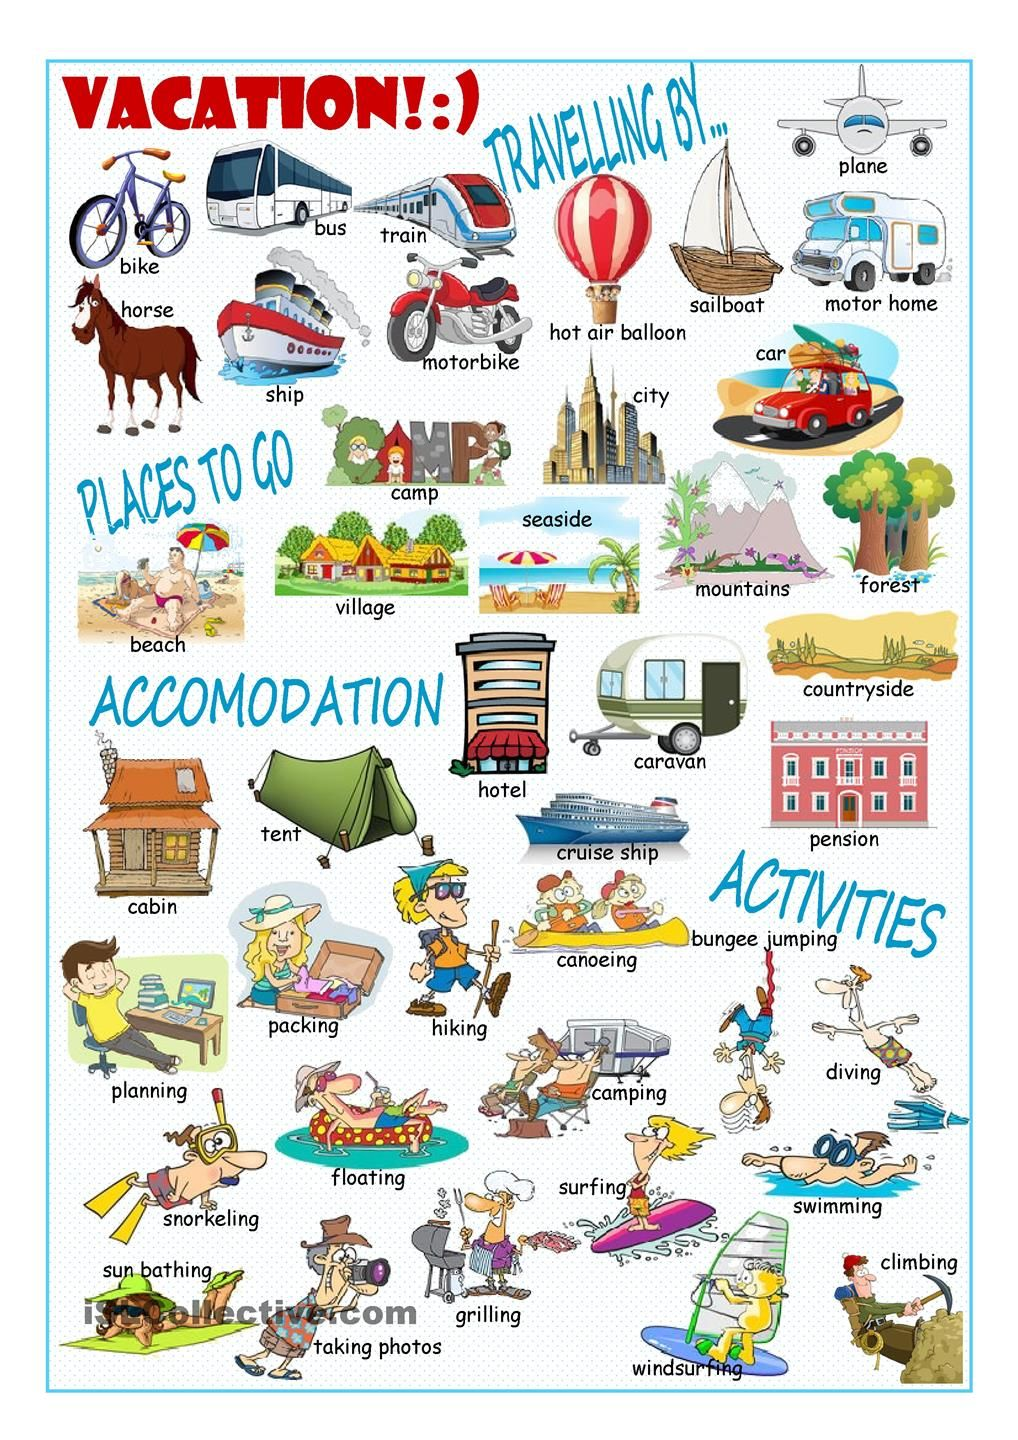 Vacation Picture Dictionary1 ใหม่ Pinterest